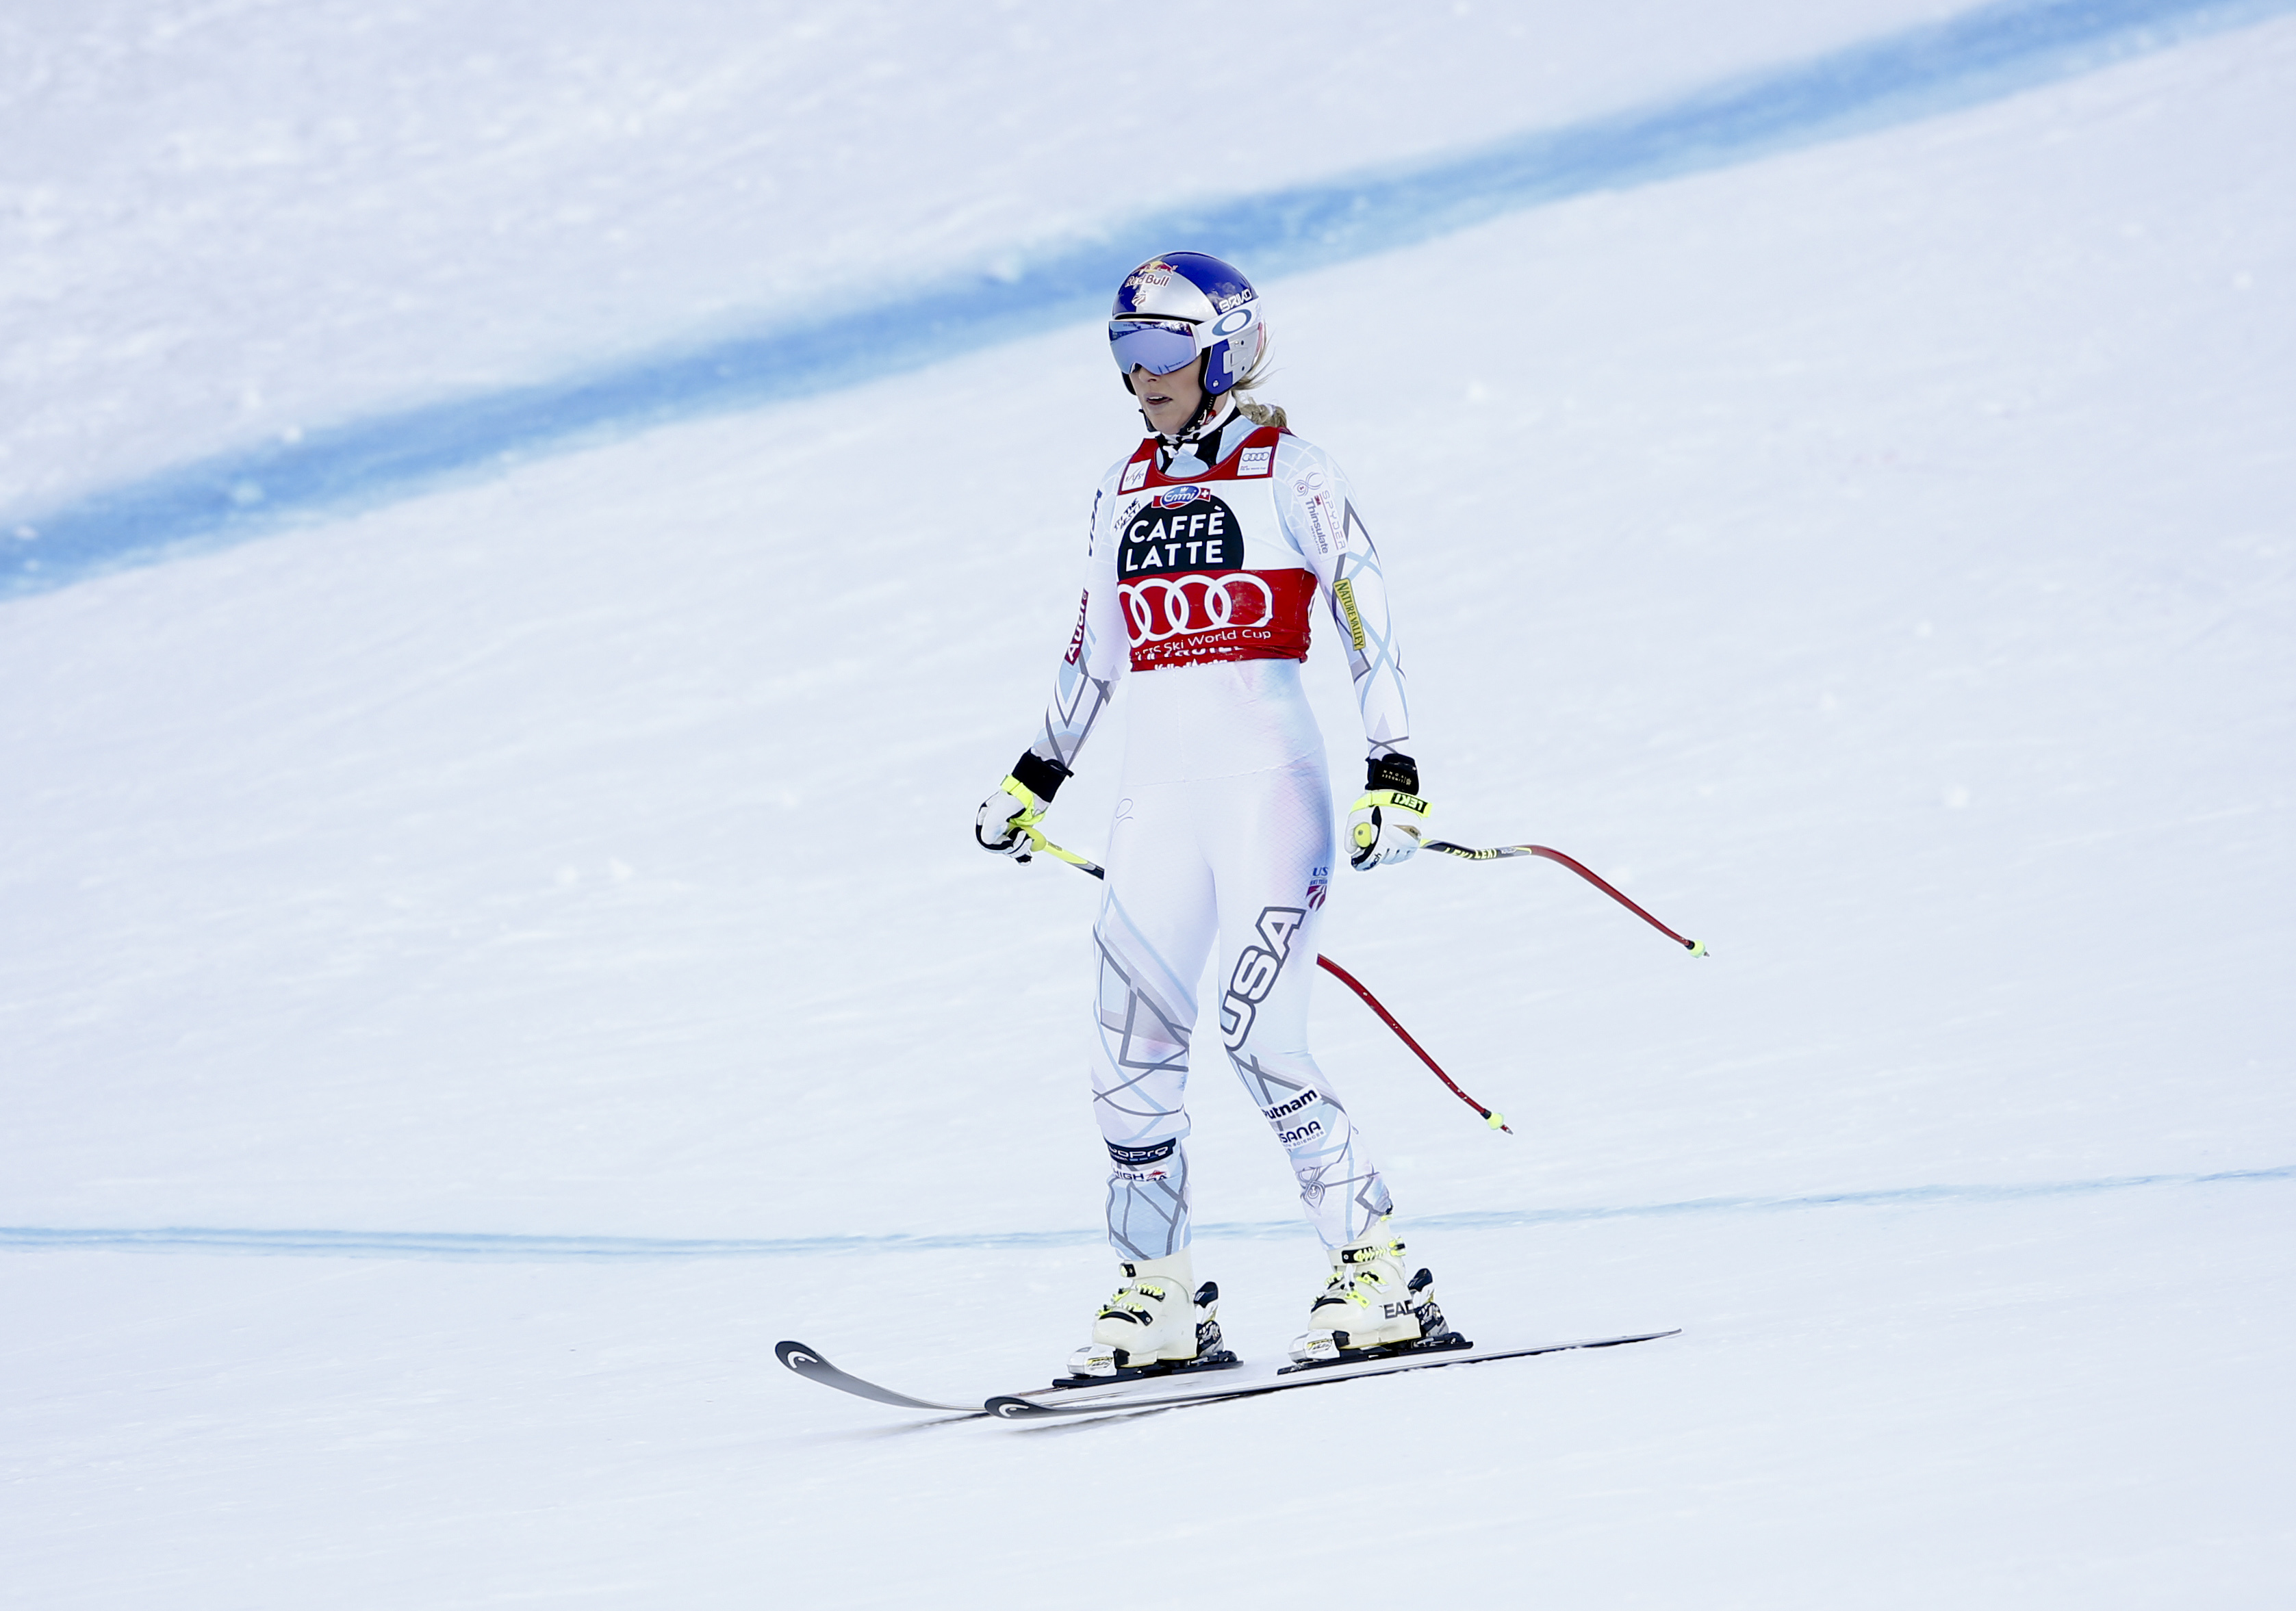 italy_alpine_skiing_world_cup-a60240fe5a_r2869.jpeg